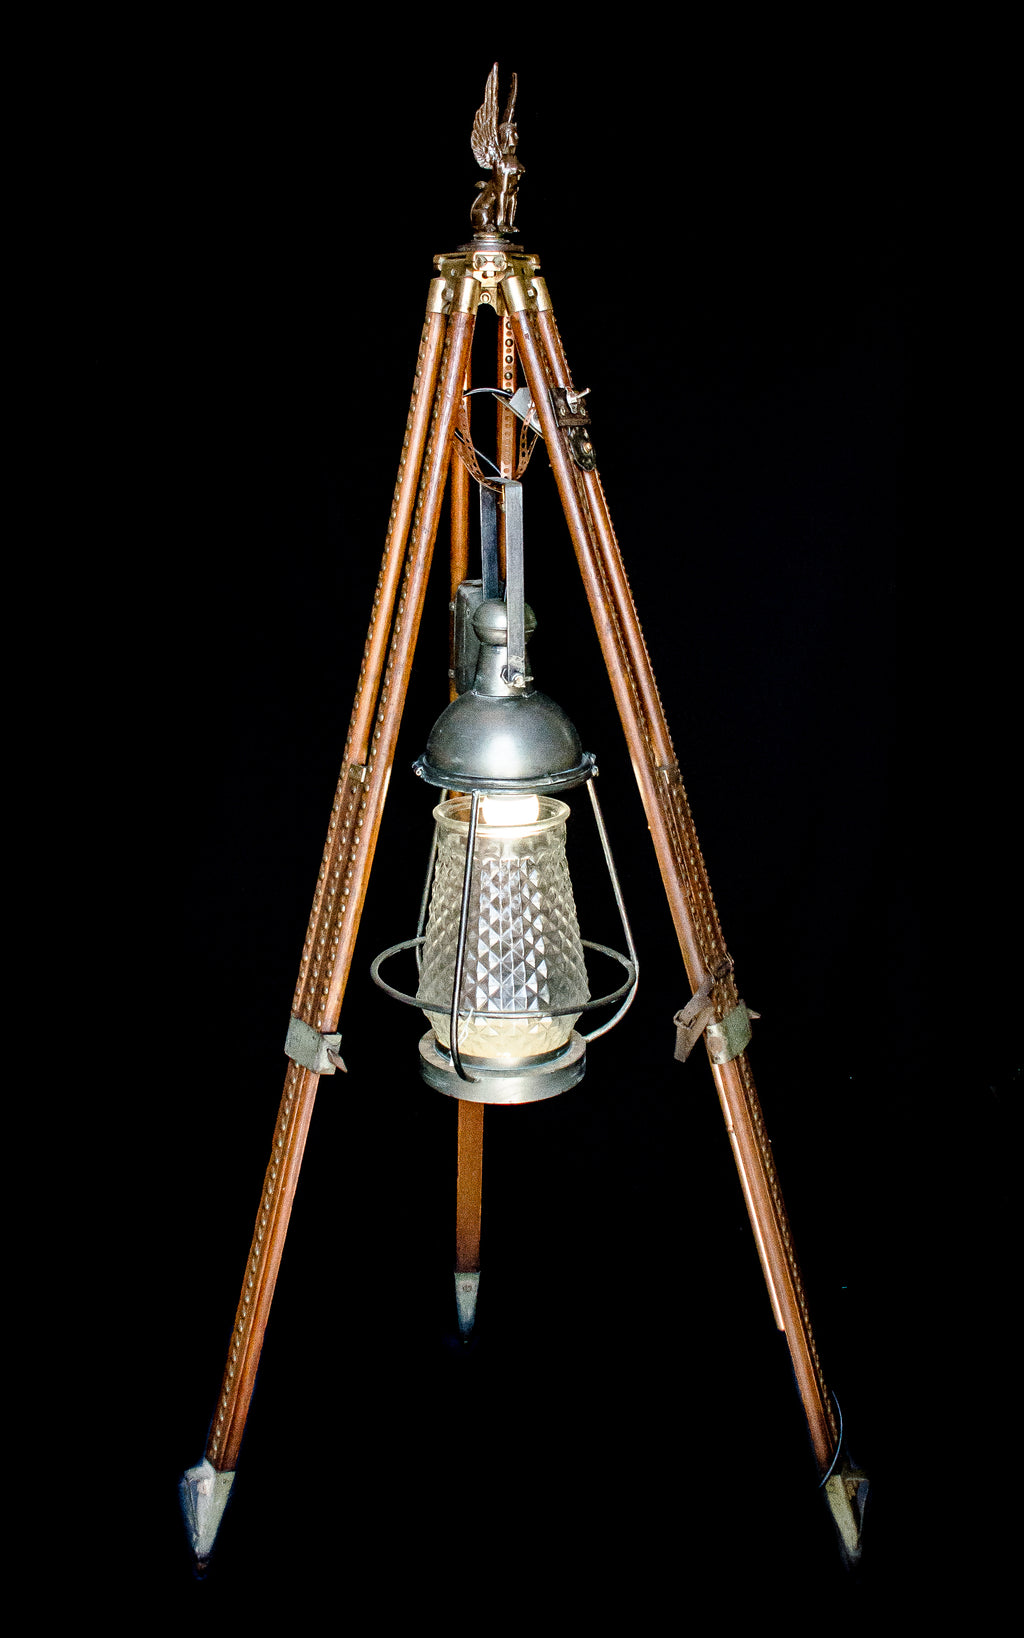 Sphinx 1 tripod light front view